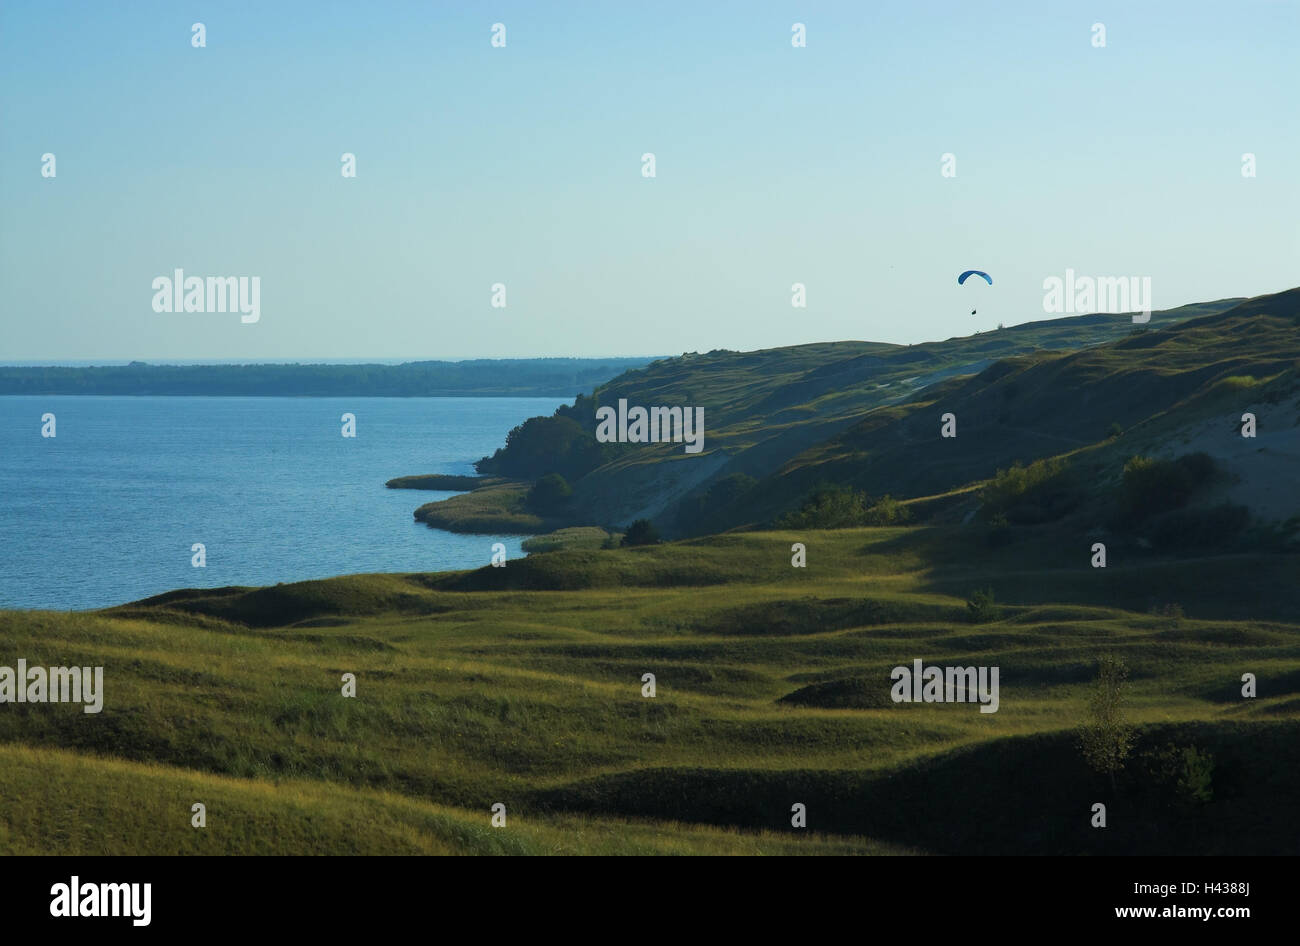 Prague eyelids, the Baltic Sea, coast, Nagliai reserve, Nida, national park health resort broad bay bar, Lithuania, - Stock Image